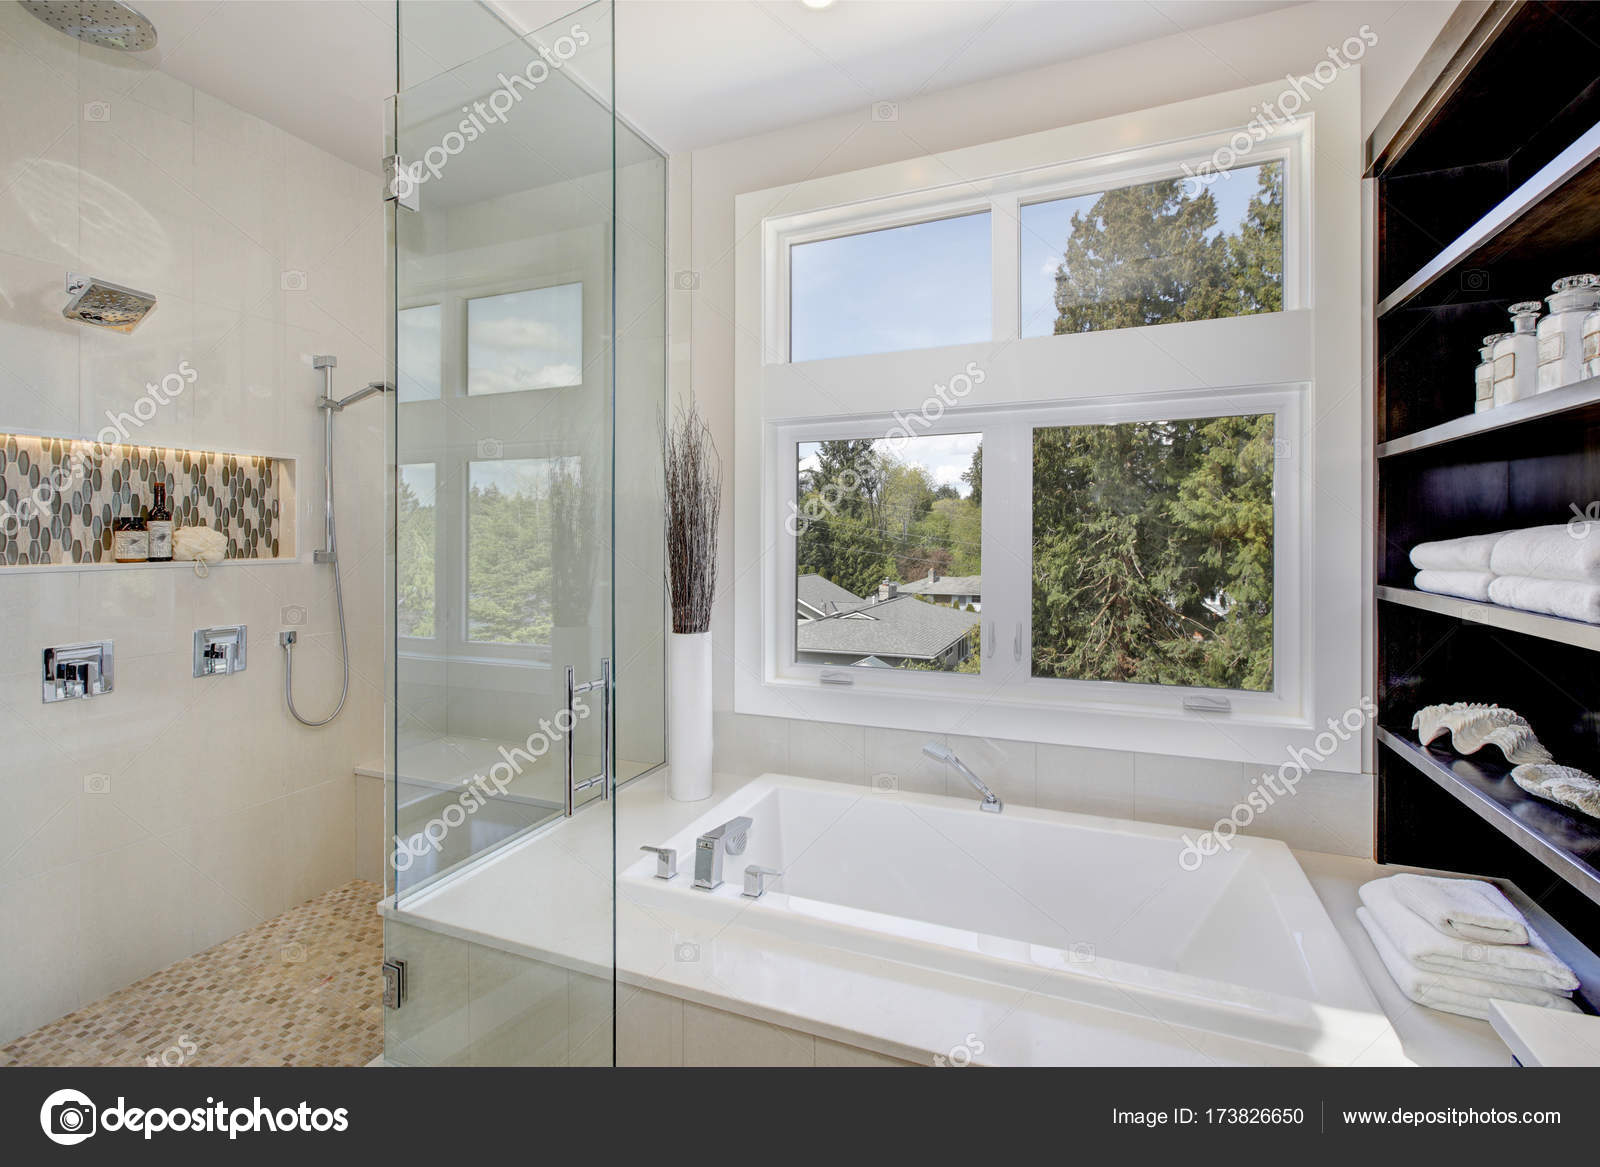 Luxury Large Walk In Showers.Luxury Bathroom Interior With Large Walk In Shower Stock